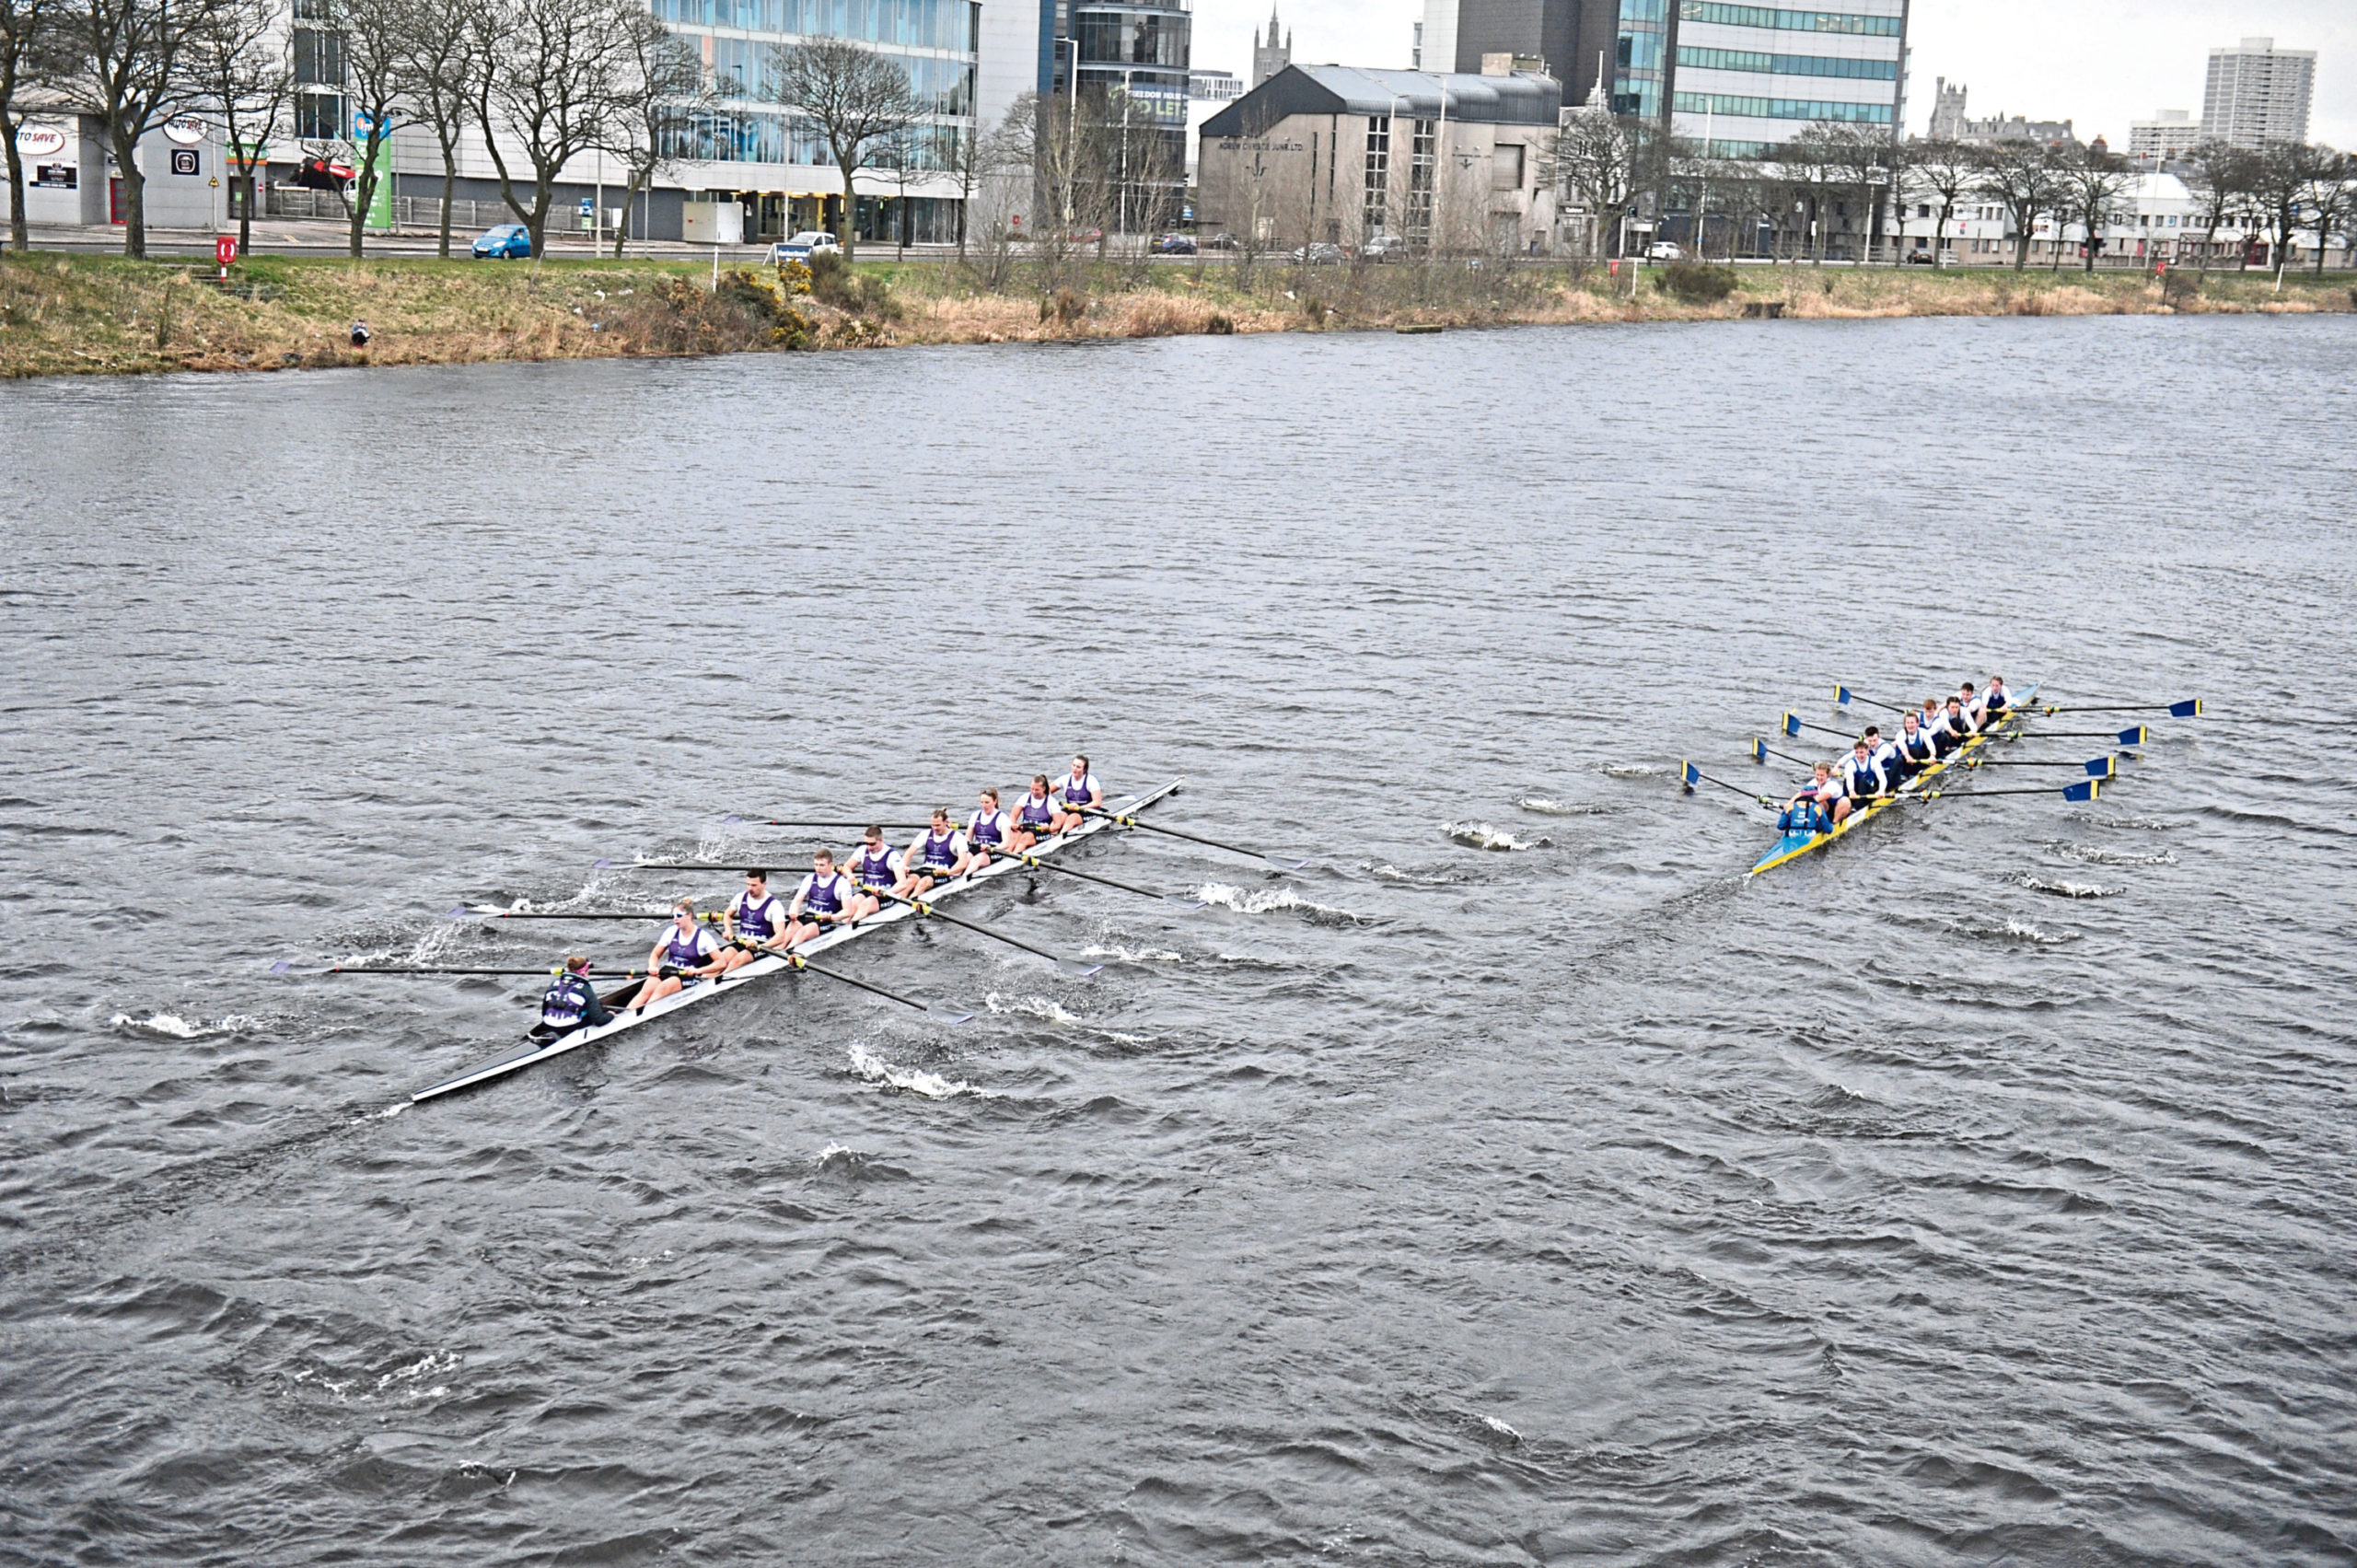 Aberdeen University win the Standard Investments Boat Race. Picture by Paul Glendell